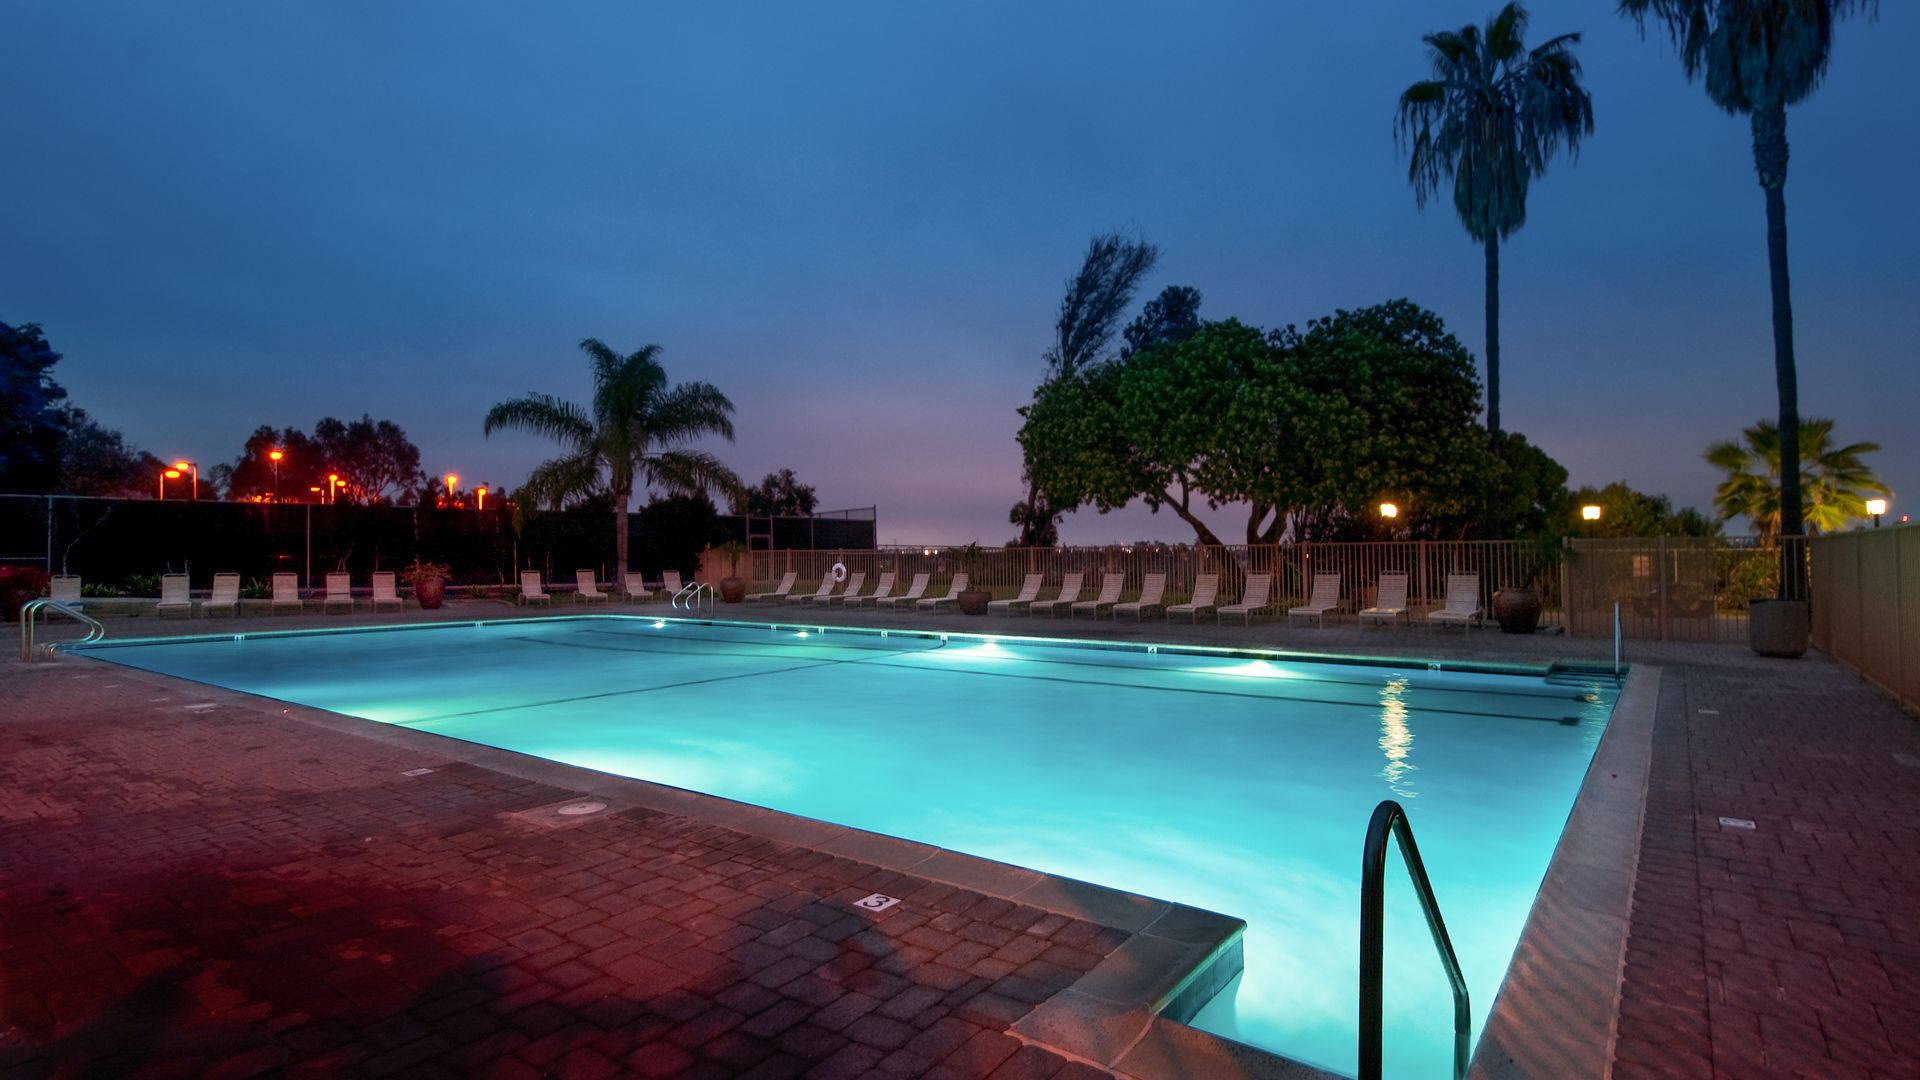 Canyon ridge apartments clairemont mesa west 3187 - Clairemont swimming pool san diego ca ...